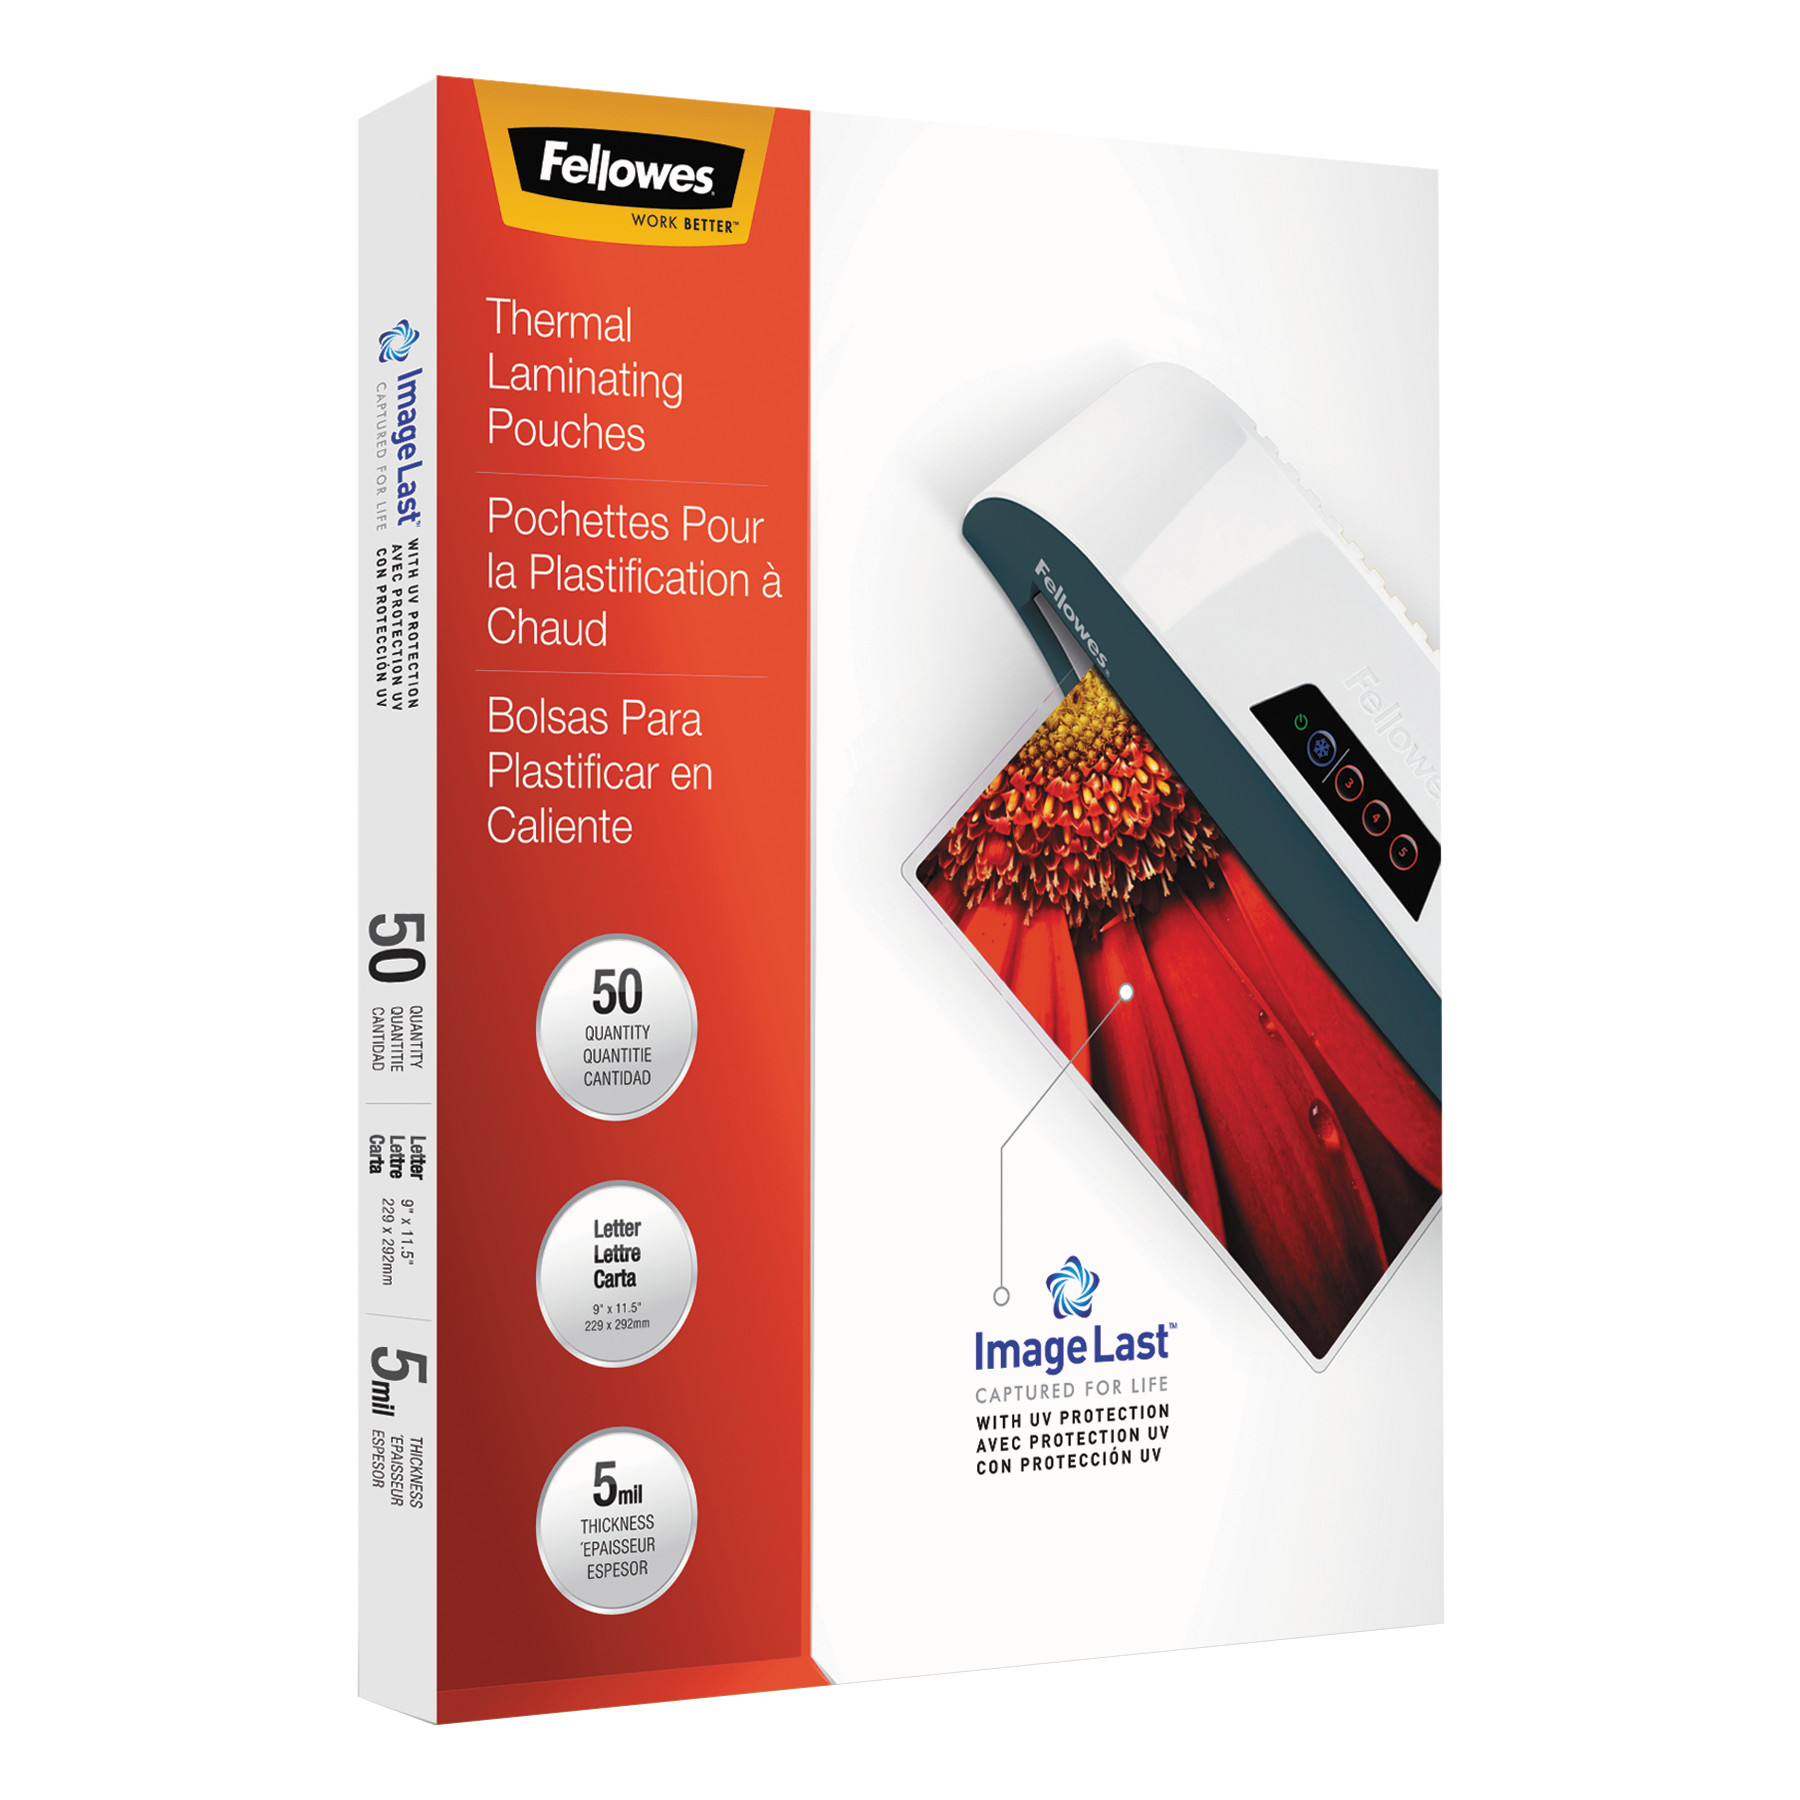 Fellowes ImageLast Laminating Pouches with UV Protection, 5mil, 11 1/2 x 9, 50/Pack